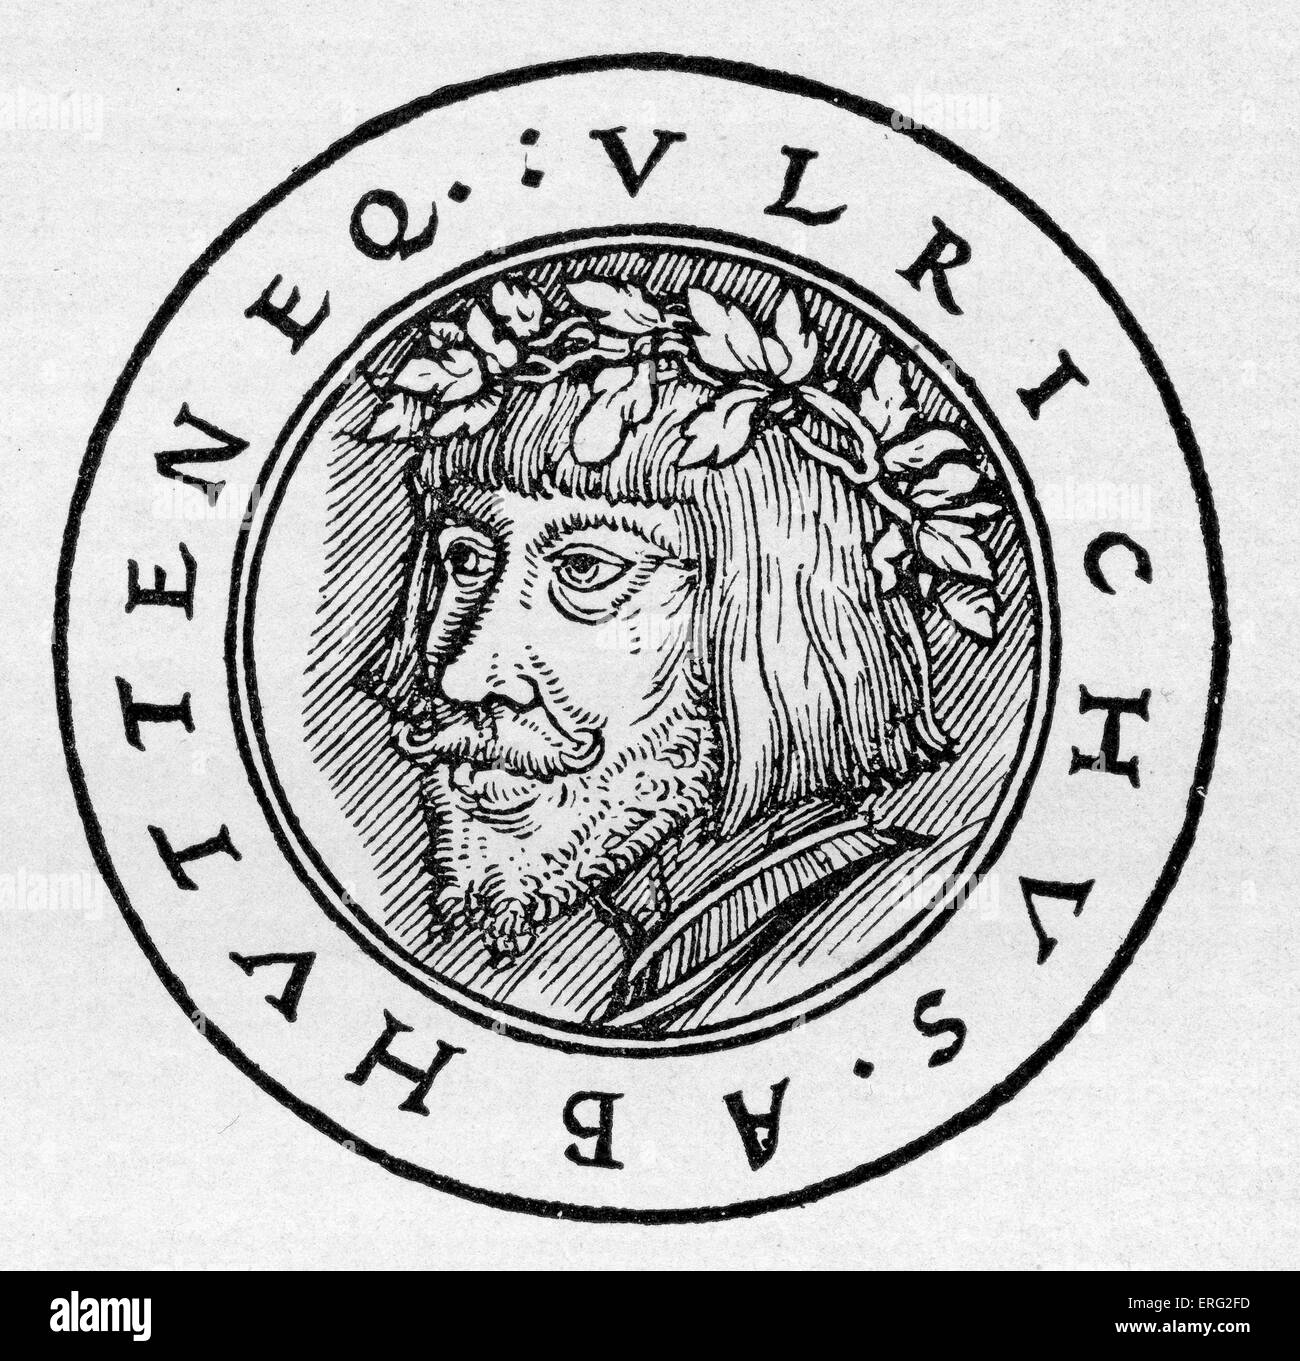 Ulrich von Hutten German Church reformer 21 April 1488 - 29 August 1523.  After a German woodcut dated 1523. - Stock Image